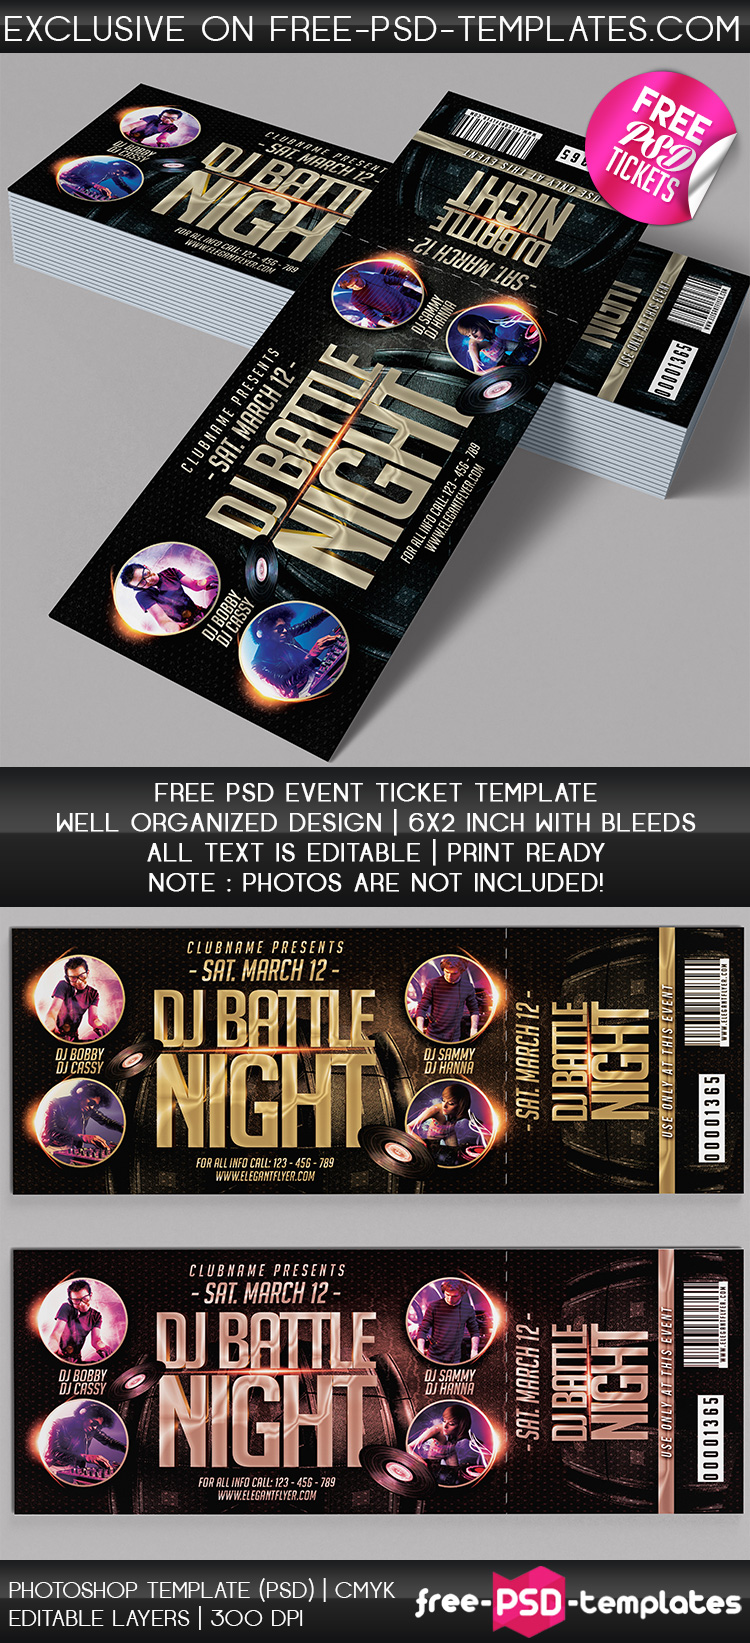 free psd event tickets free psd templates